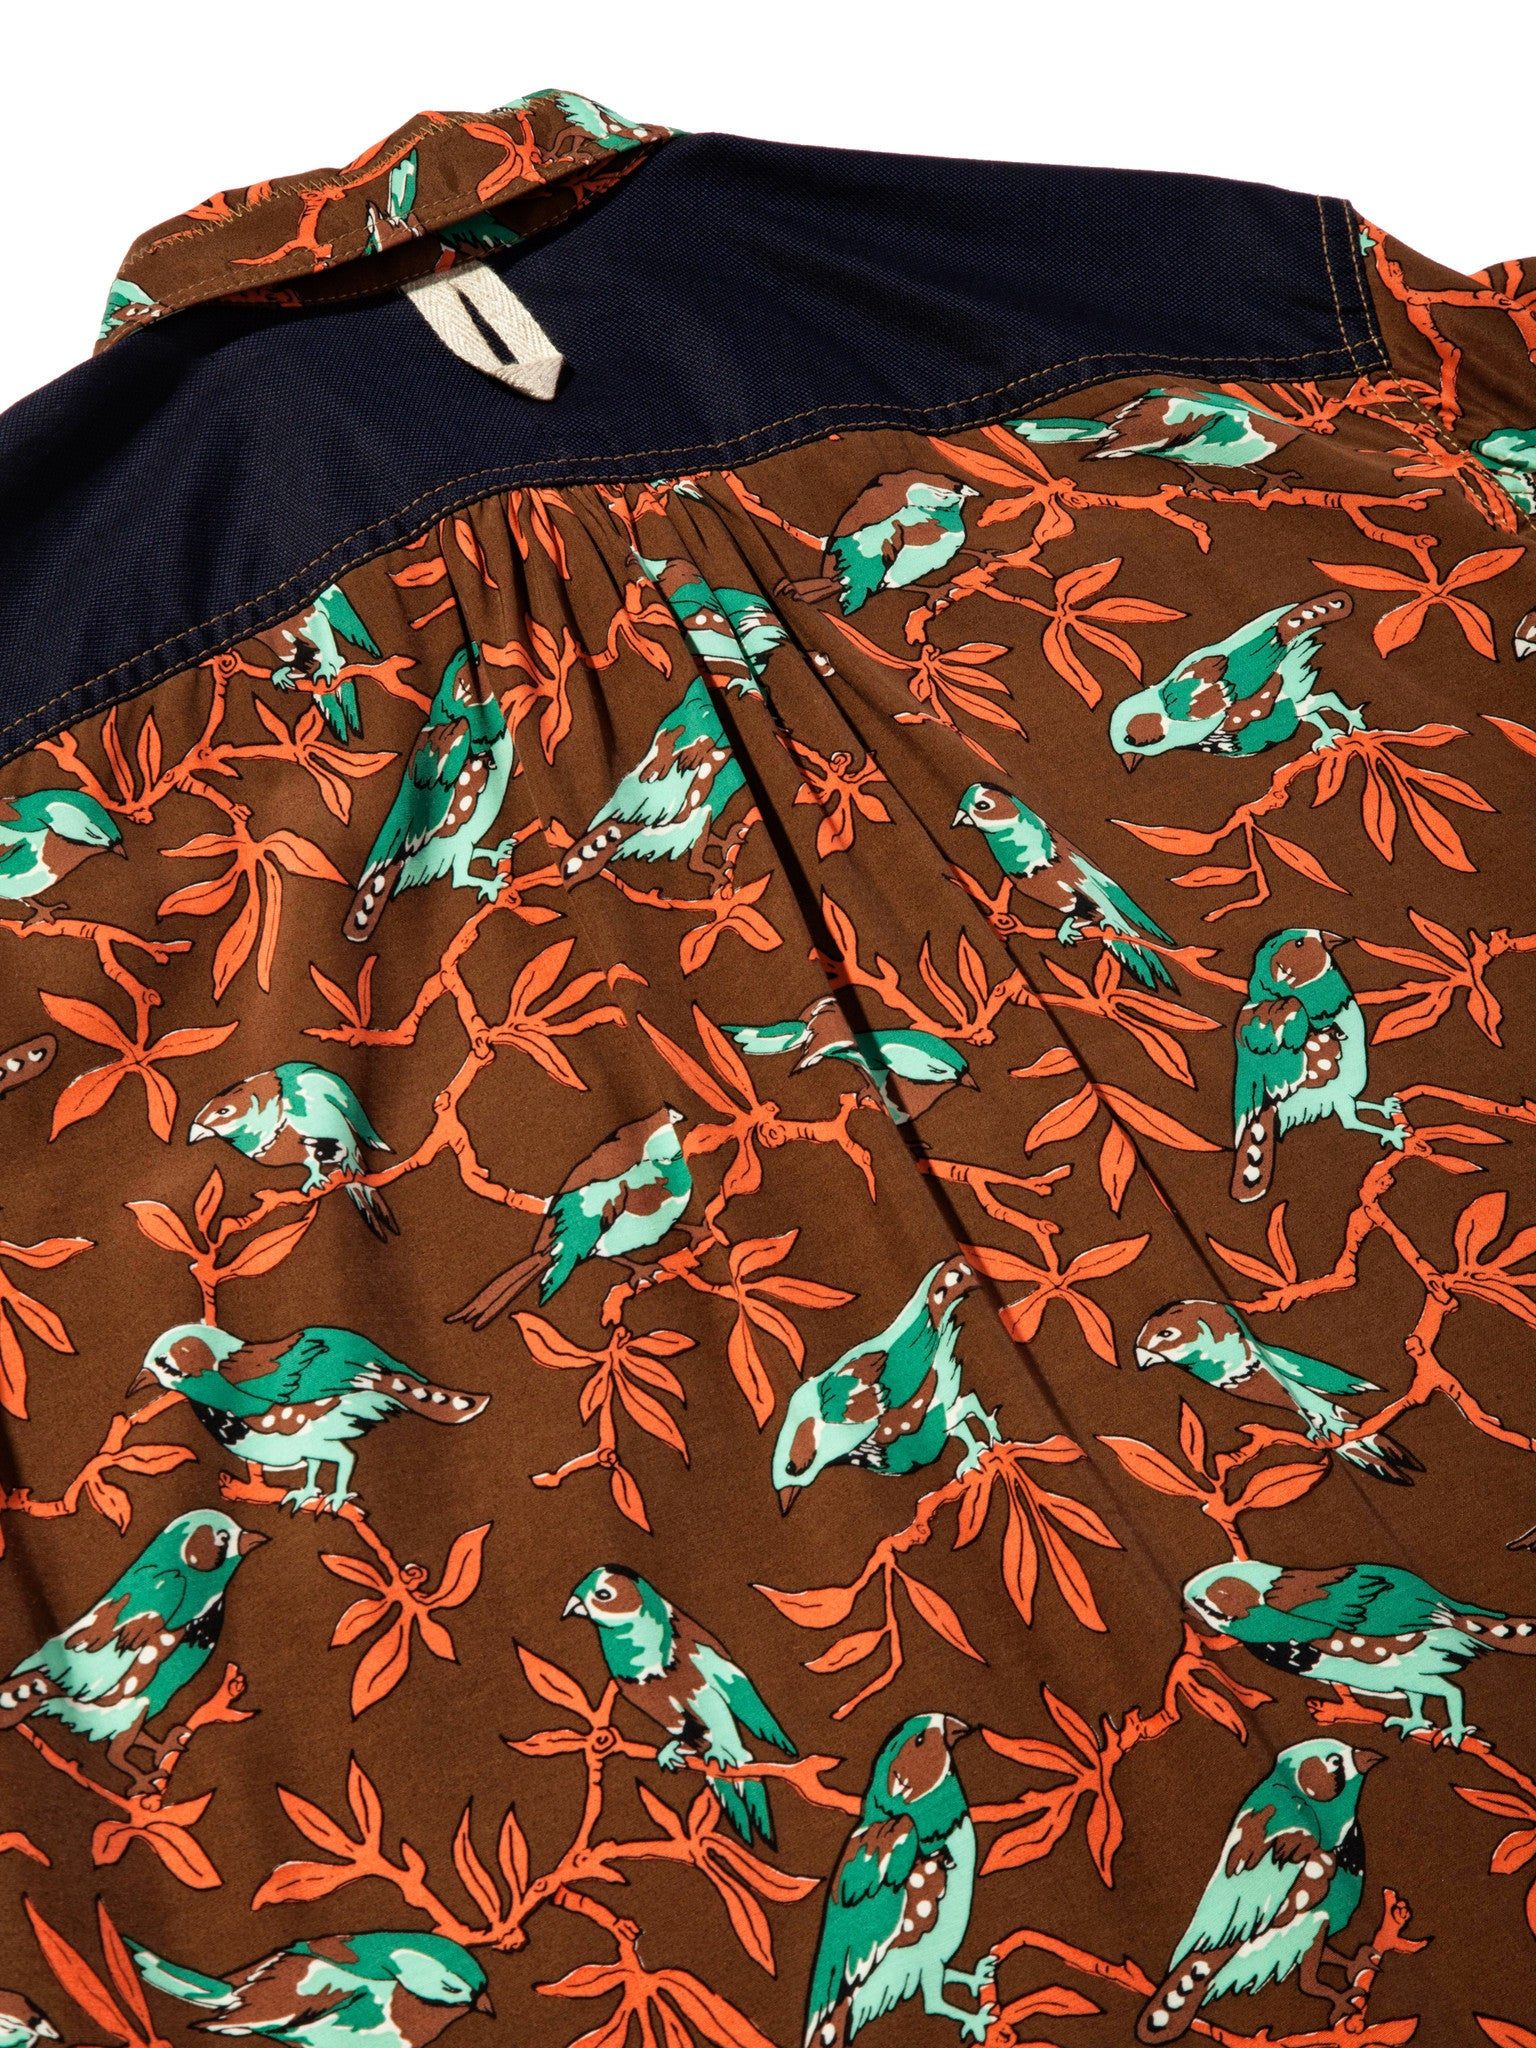 XL Printed Motif Shirt (Birds) 6